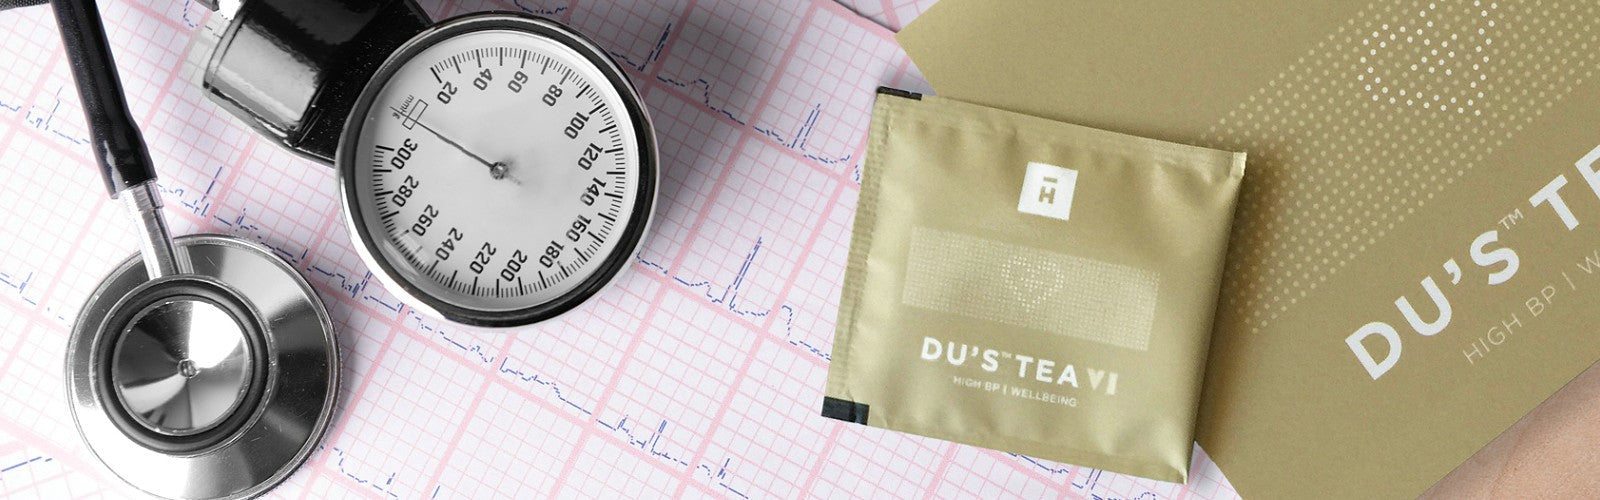 Du's tea for high blood pressure